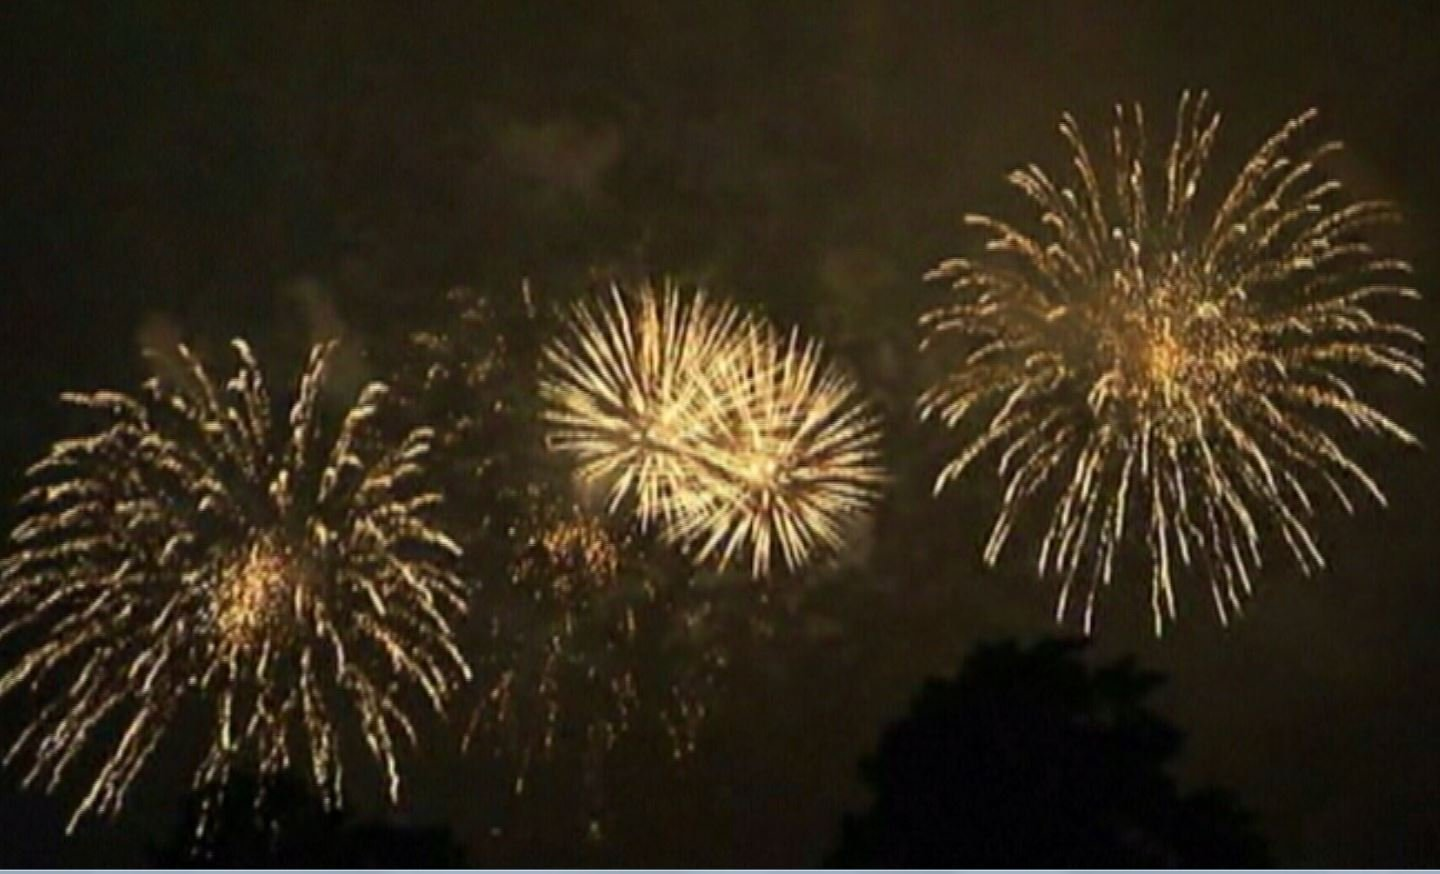 local students invited to enter the annual or s th of e annual or s 4th of big bang celebration file photo